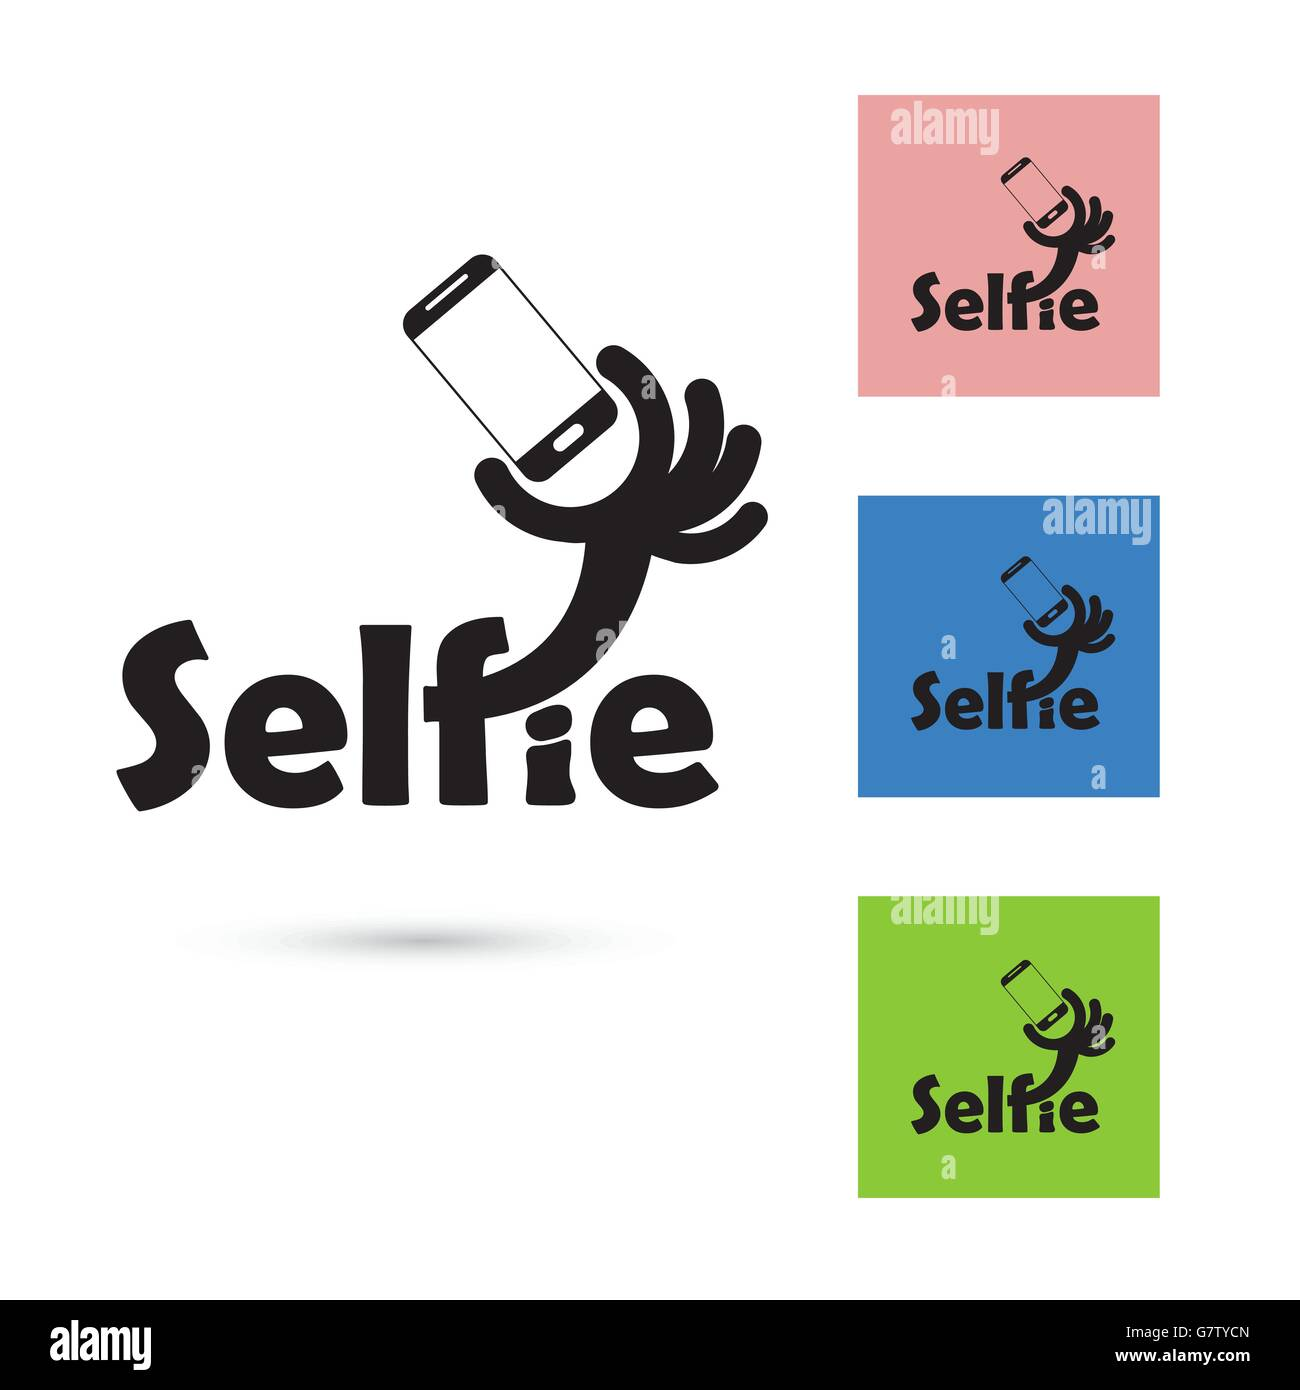 Selfie Word Logo Elements Design Taking Selfie Portrait